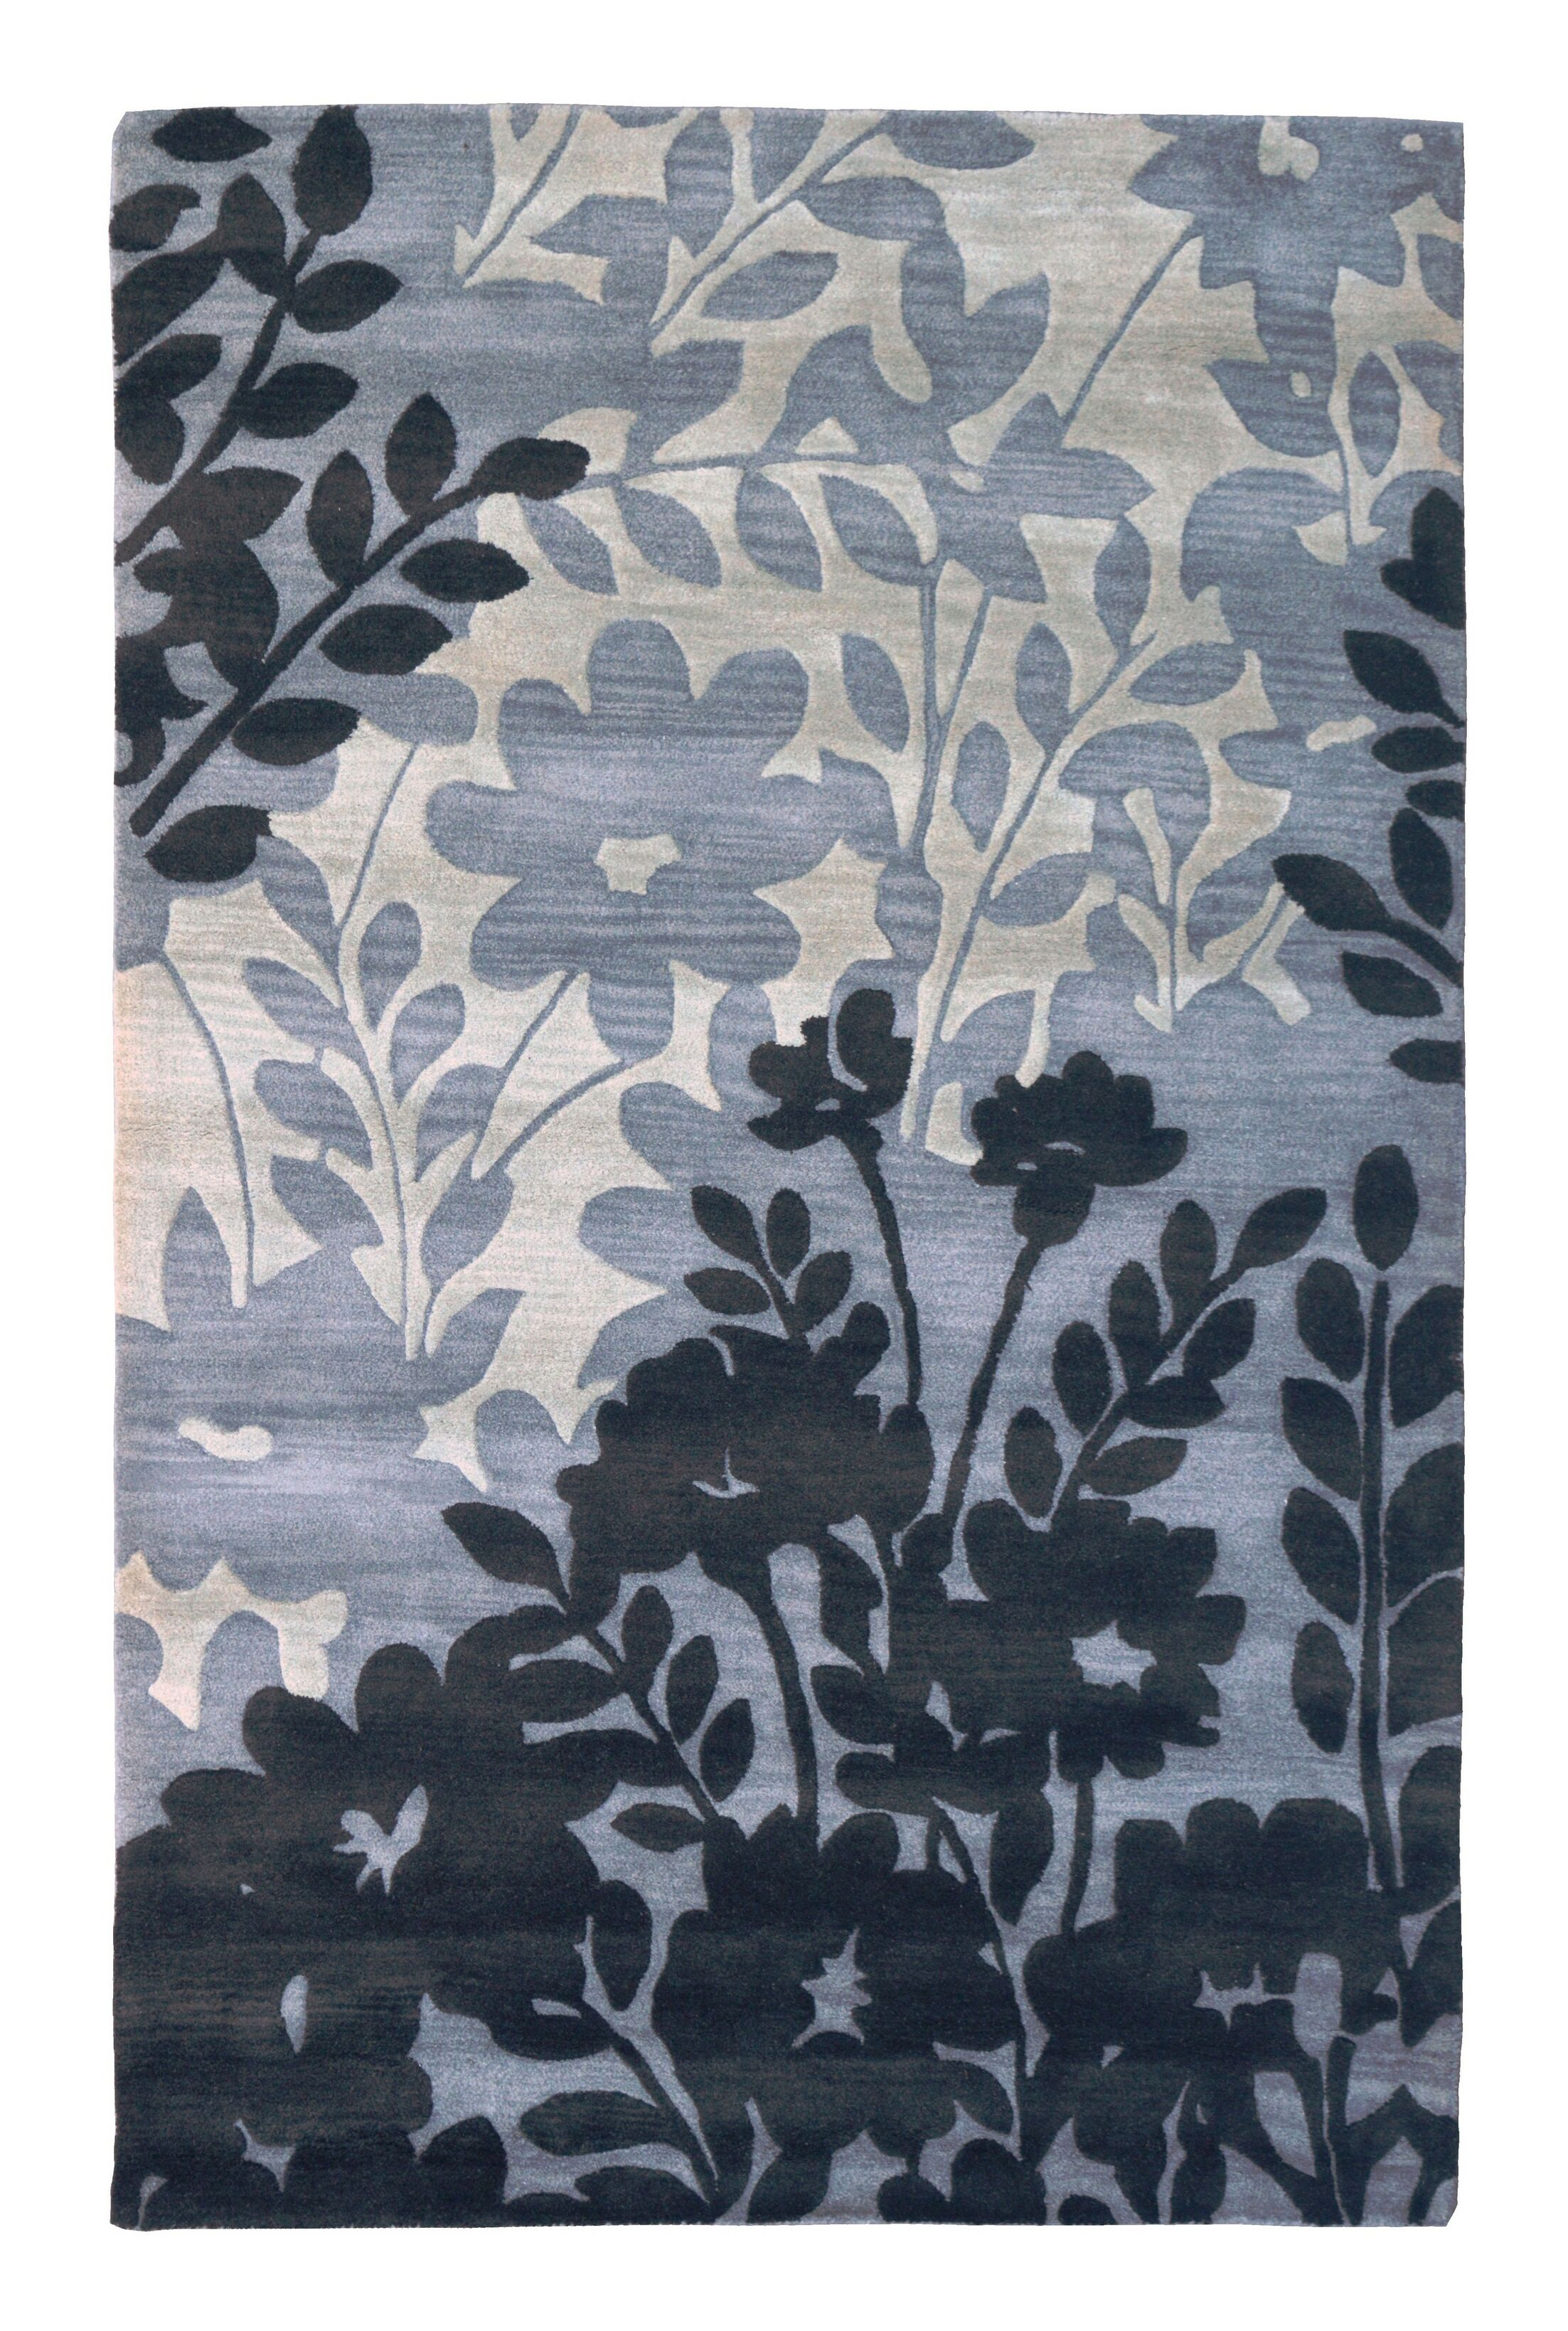 Wool Floral Hand-Tufted Gray/Black Area Rug Rug Size: 5' x 8'